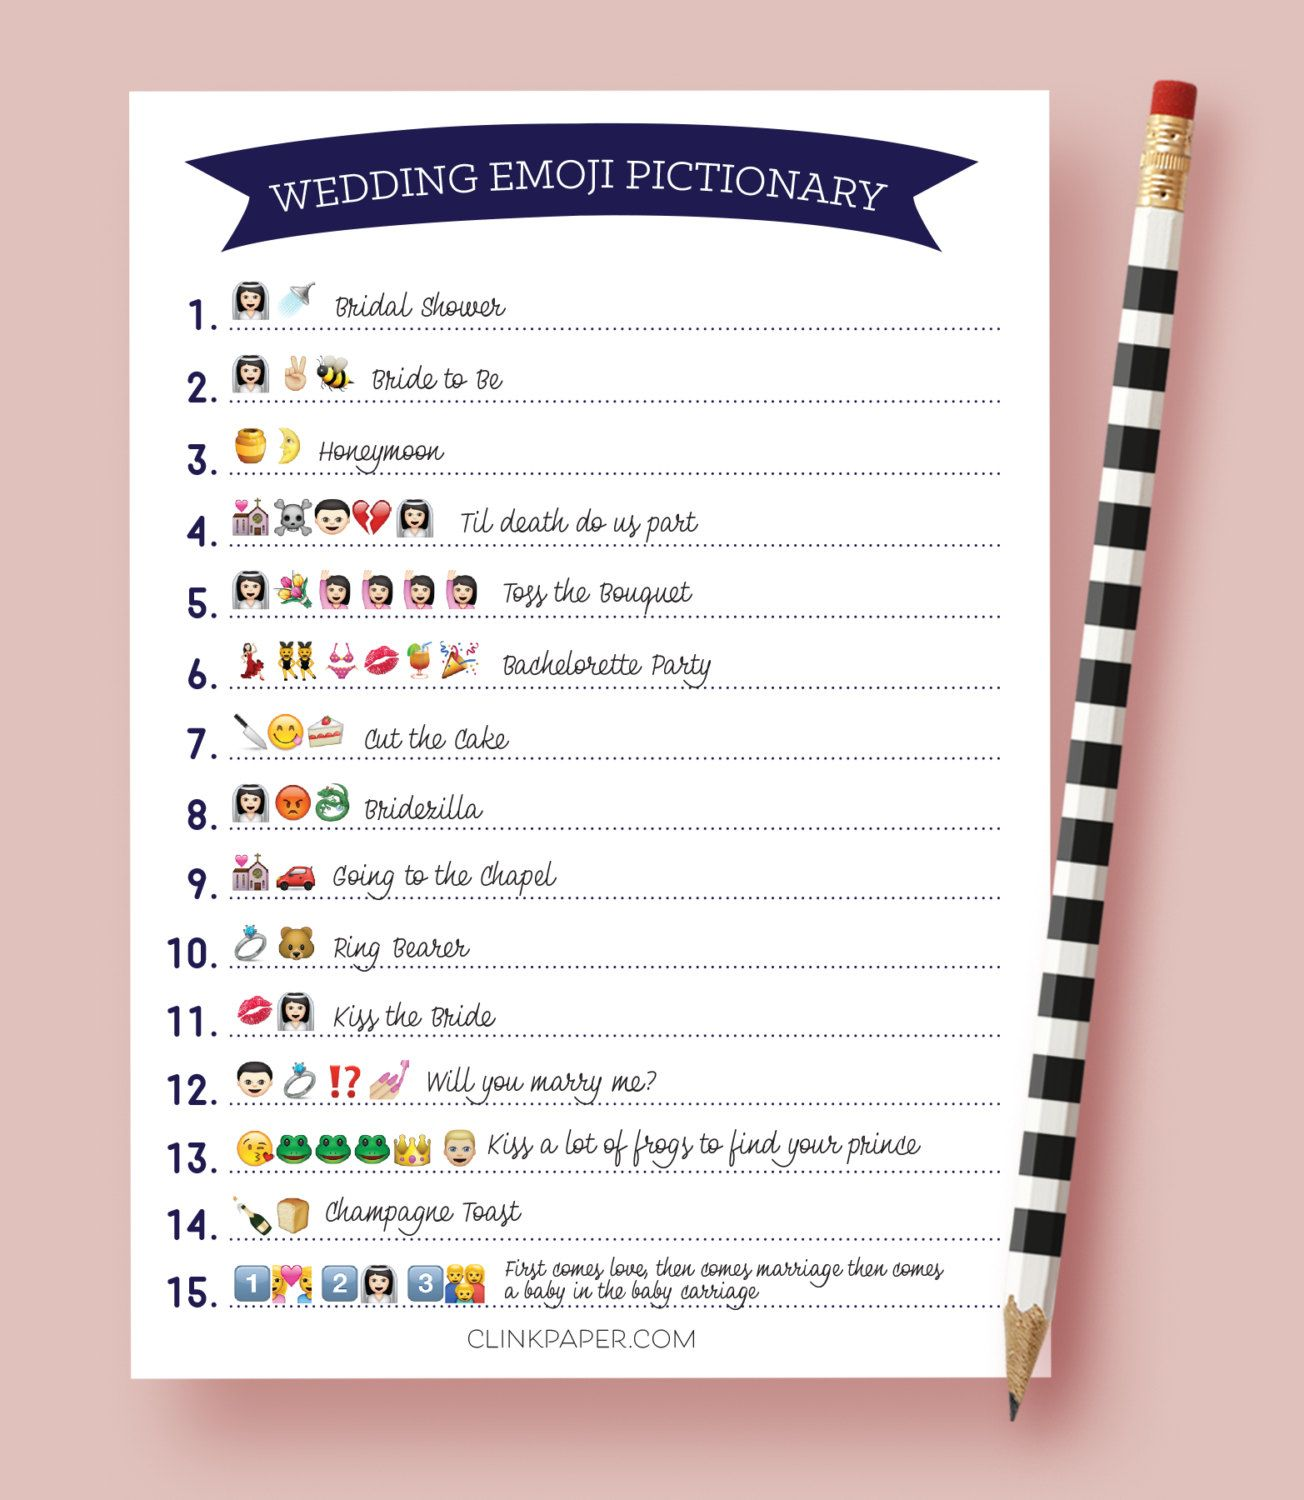 wedding emoji pictionary bridal shower game instant download print at home